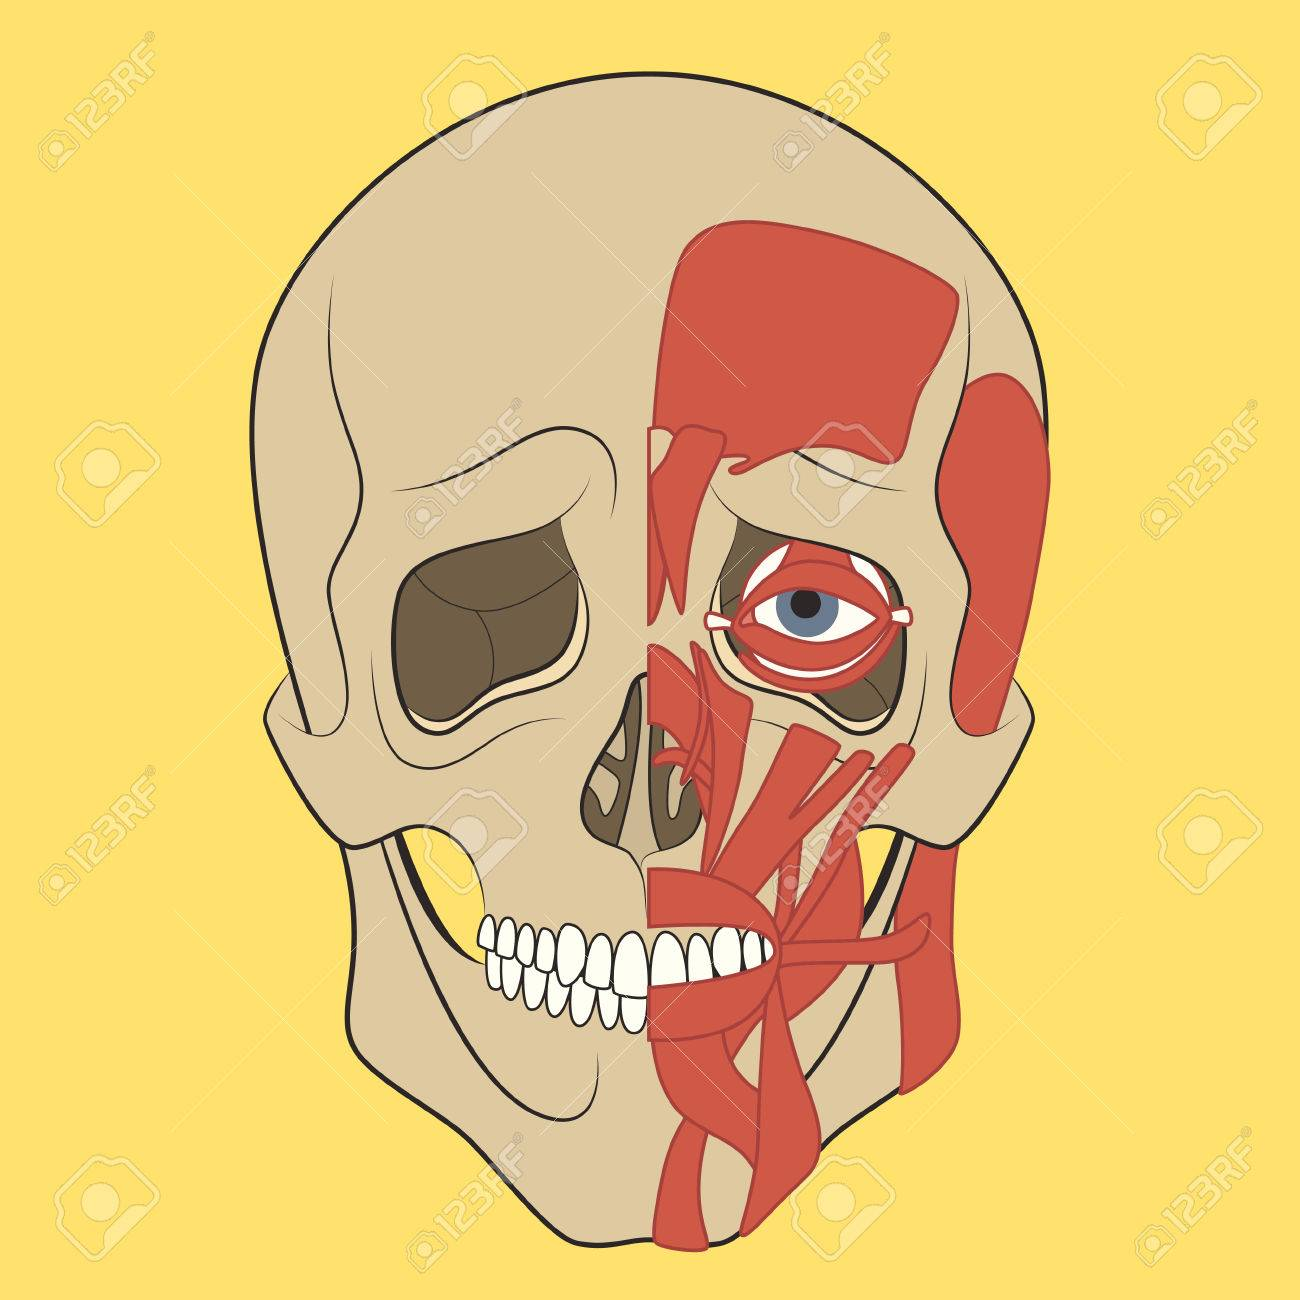 Muscle Of Faces Vector Illustration Of Human Head Anatomy Medical